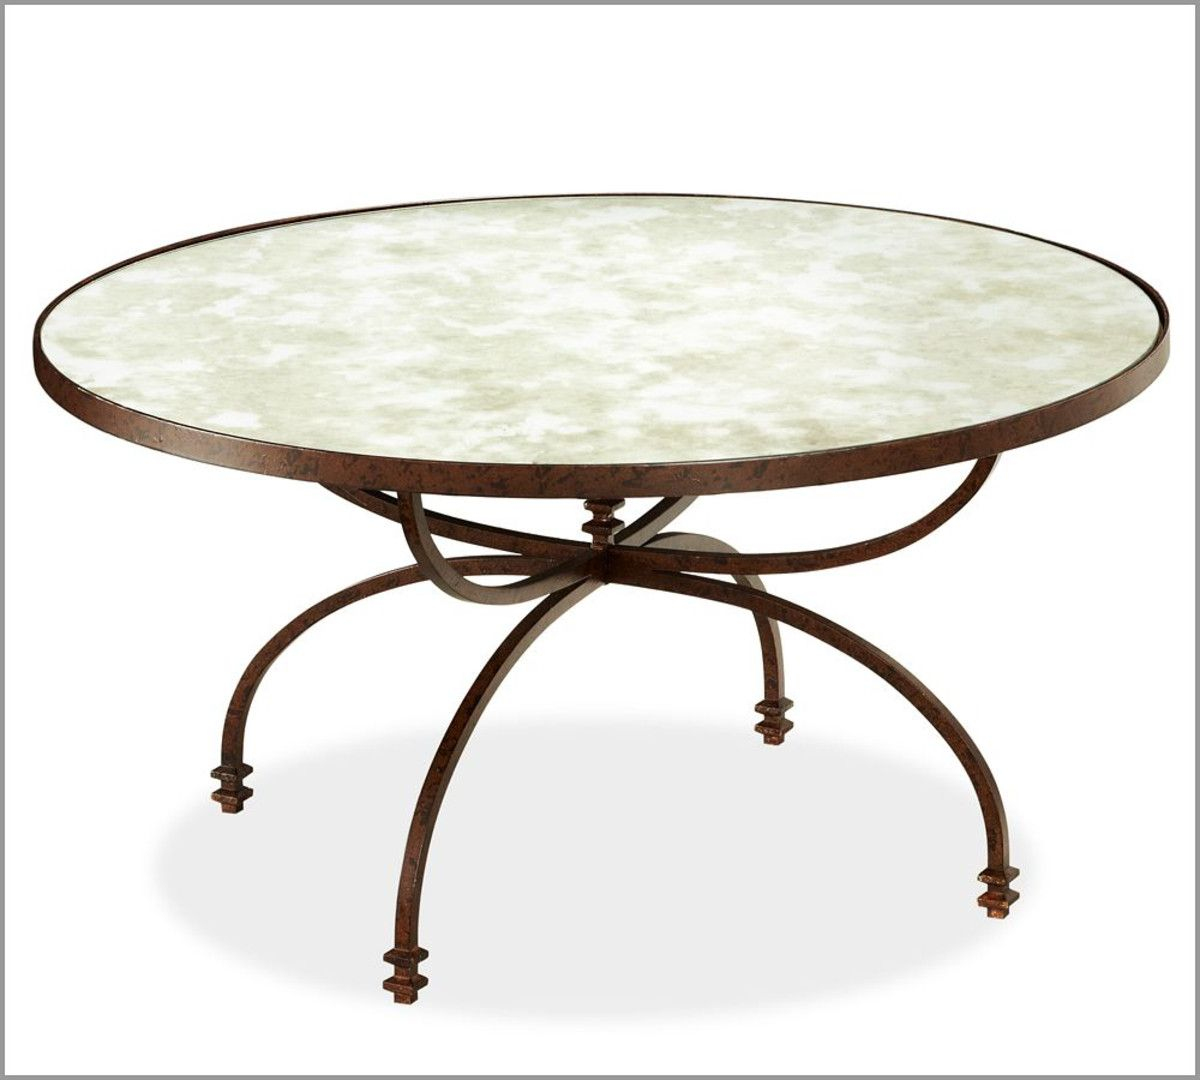 Willow Coffee Table 91cm Diameter 640 Pottery Barn